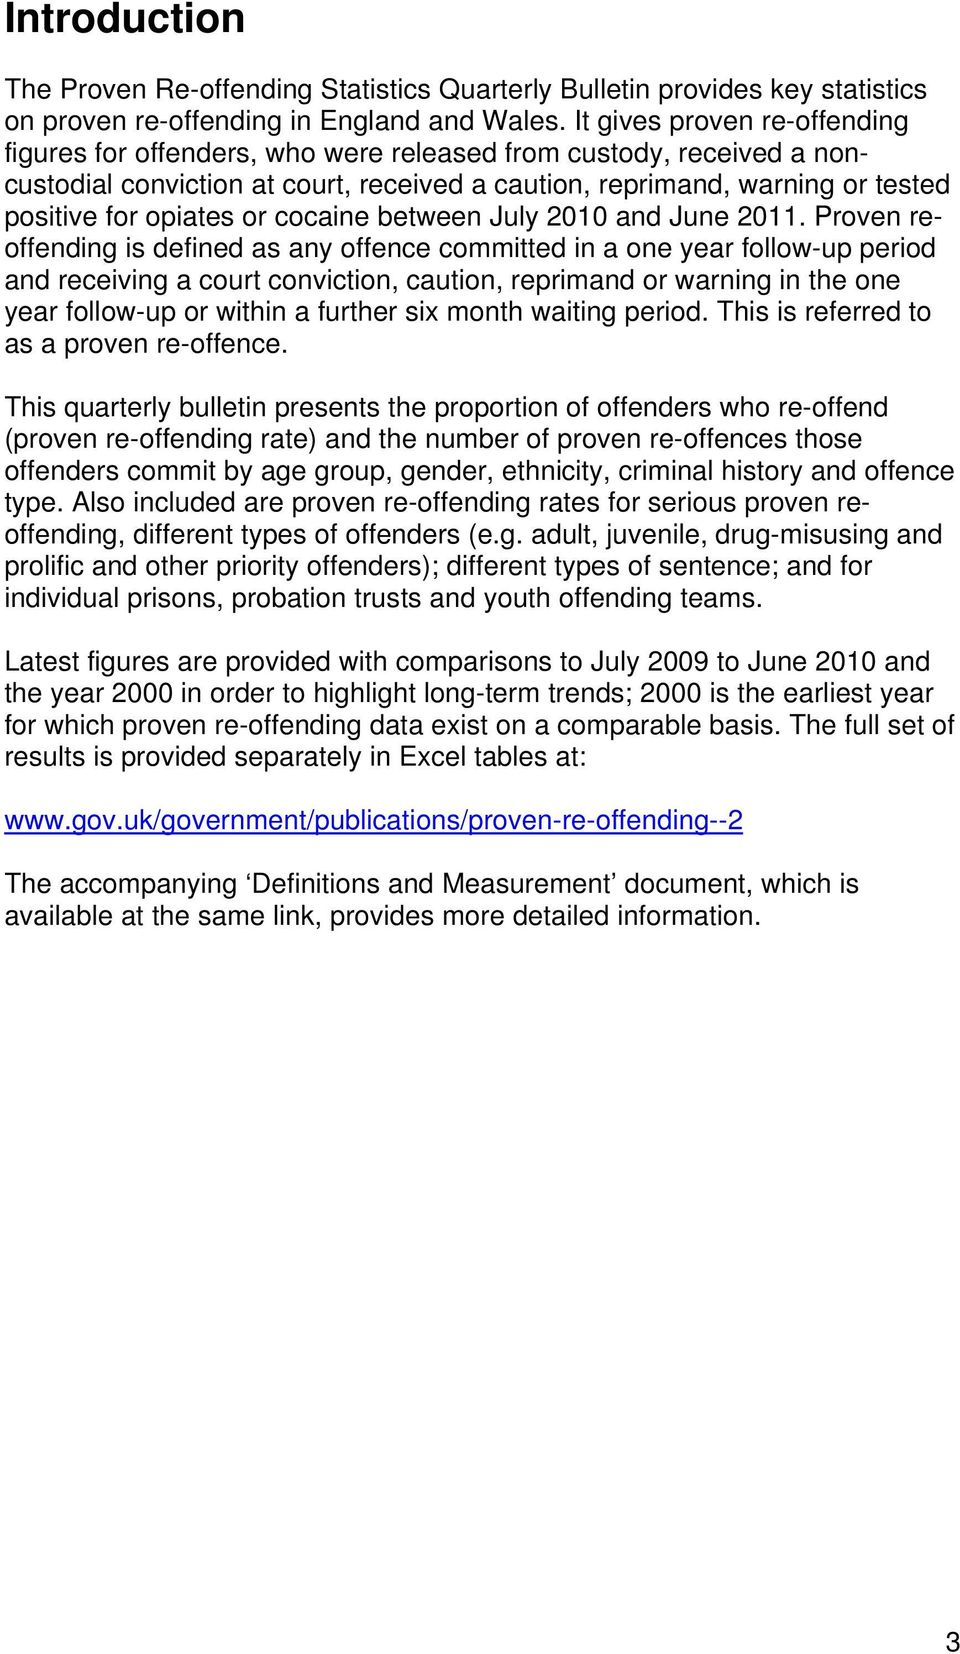 or cocaine between July 2010 and June 2011.